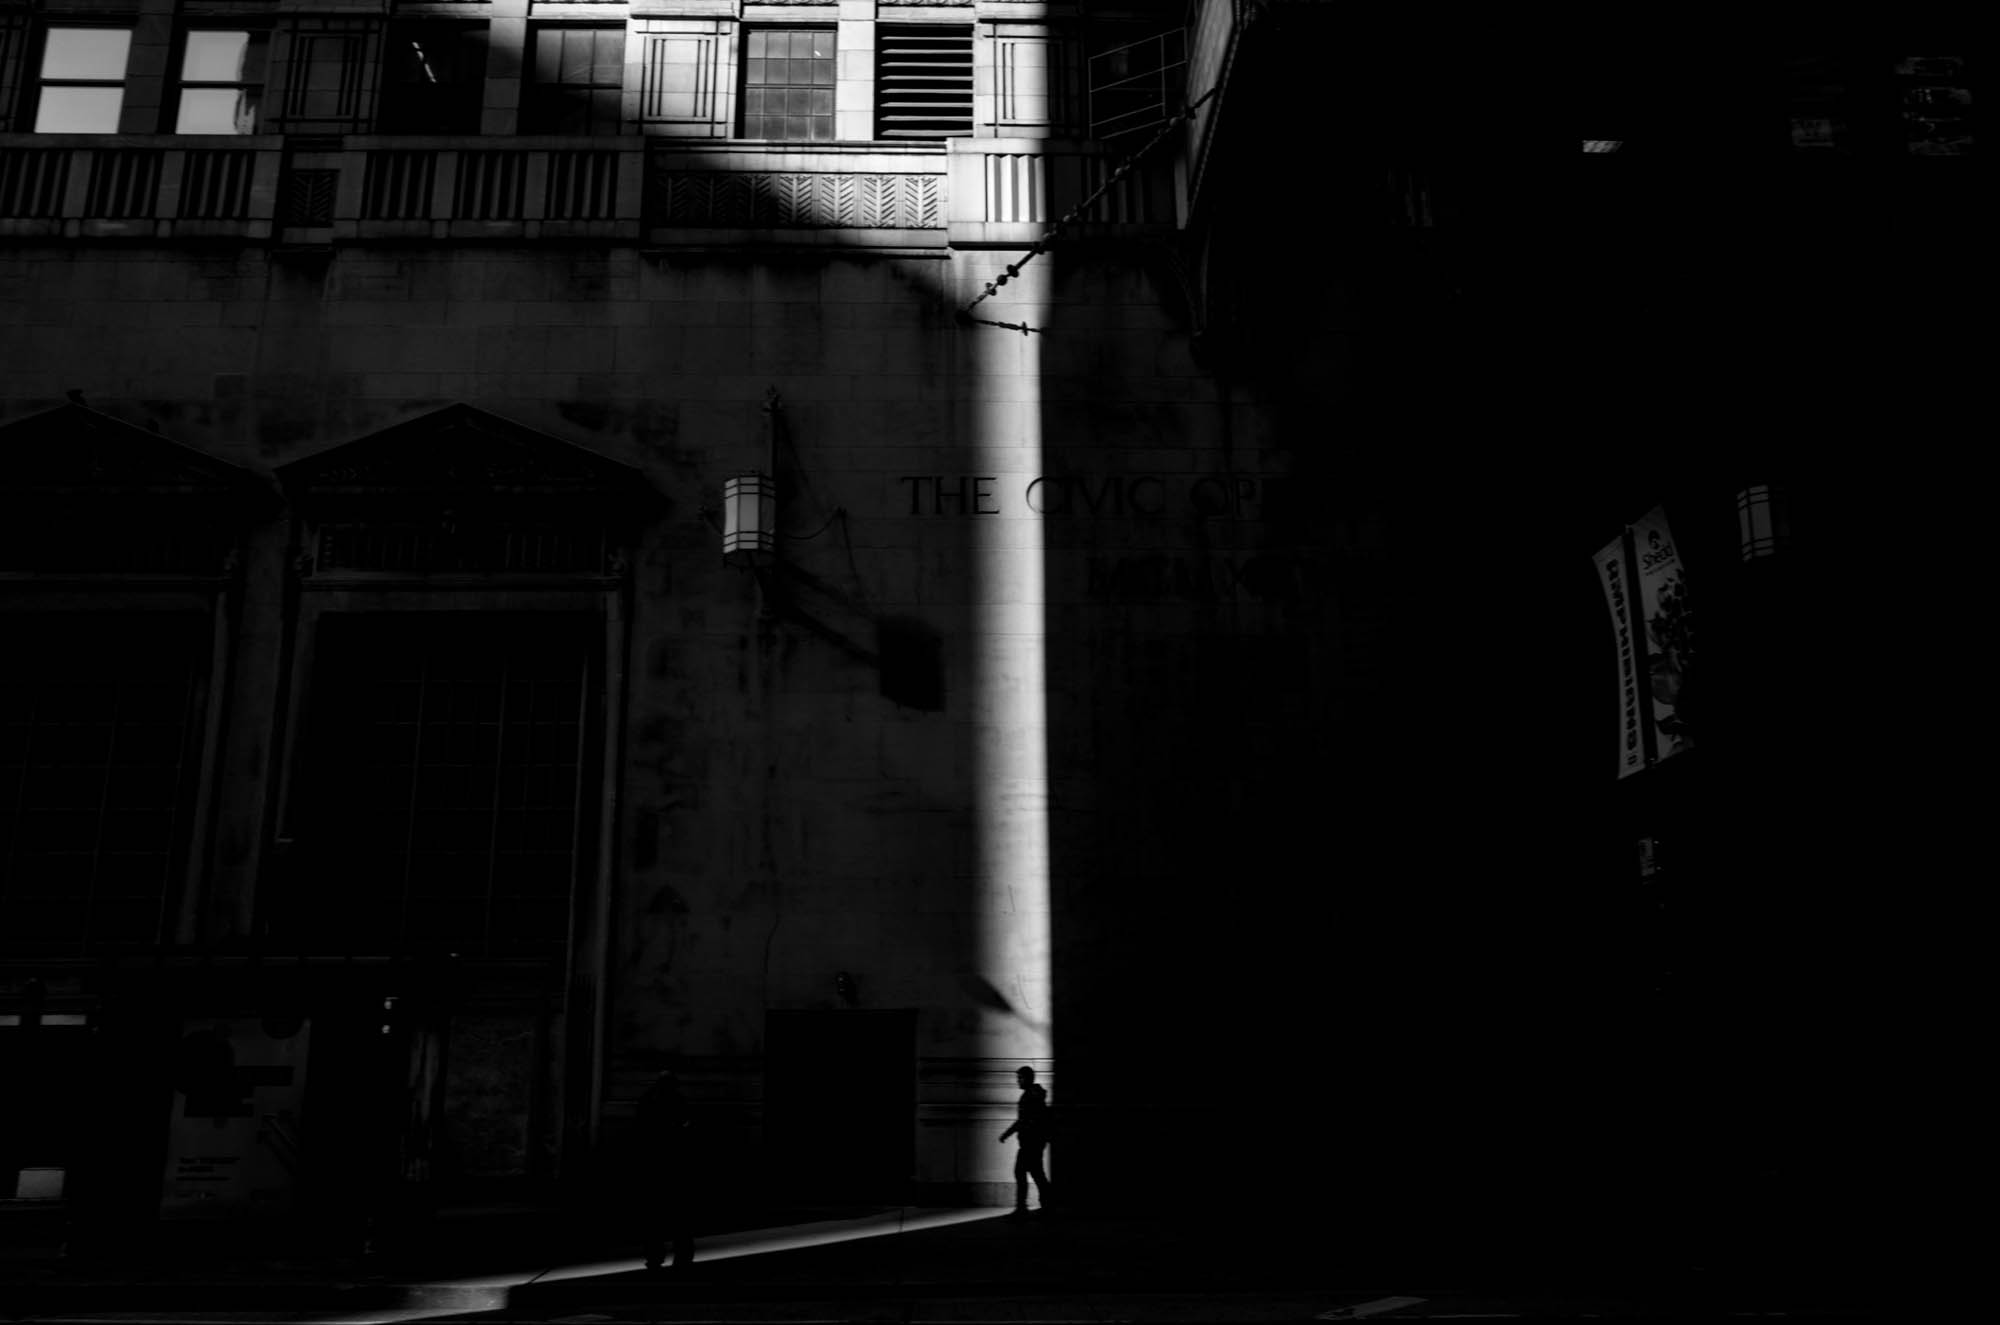 A silhouette in downtown Chicago